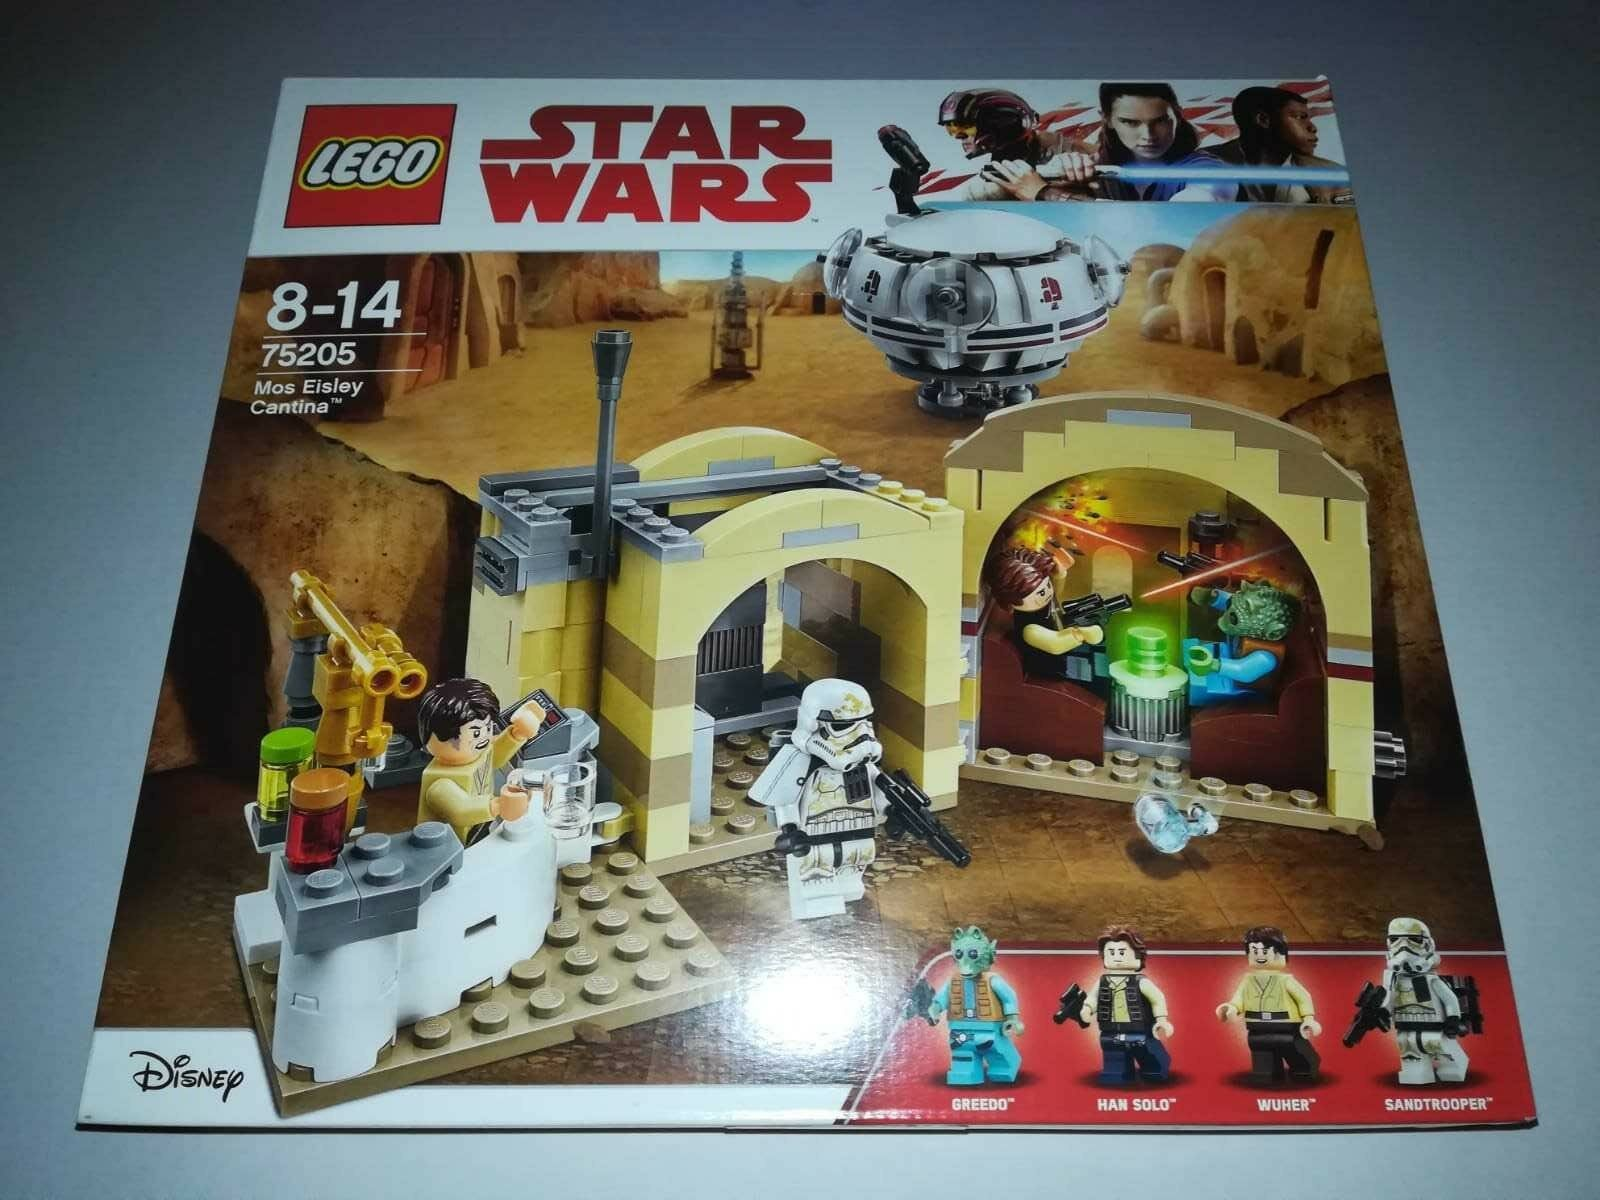 Lego Star Wars 75205 Cantina Seltenes Set